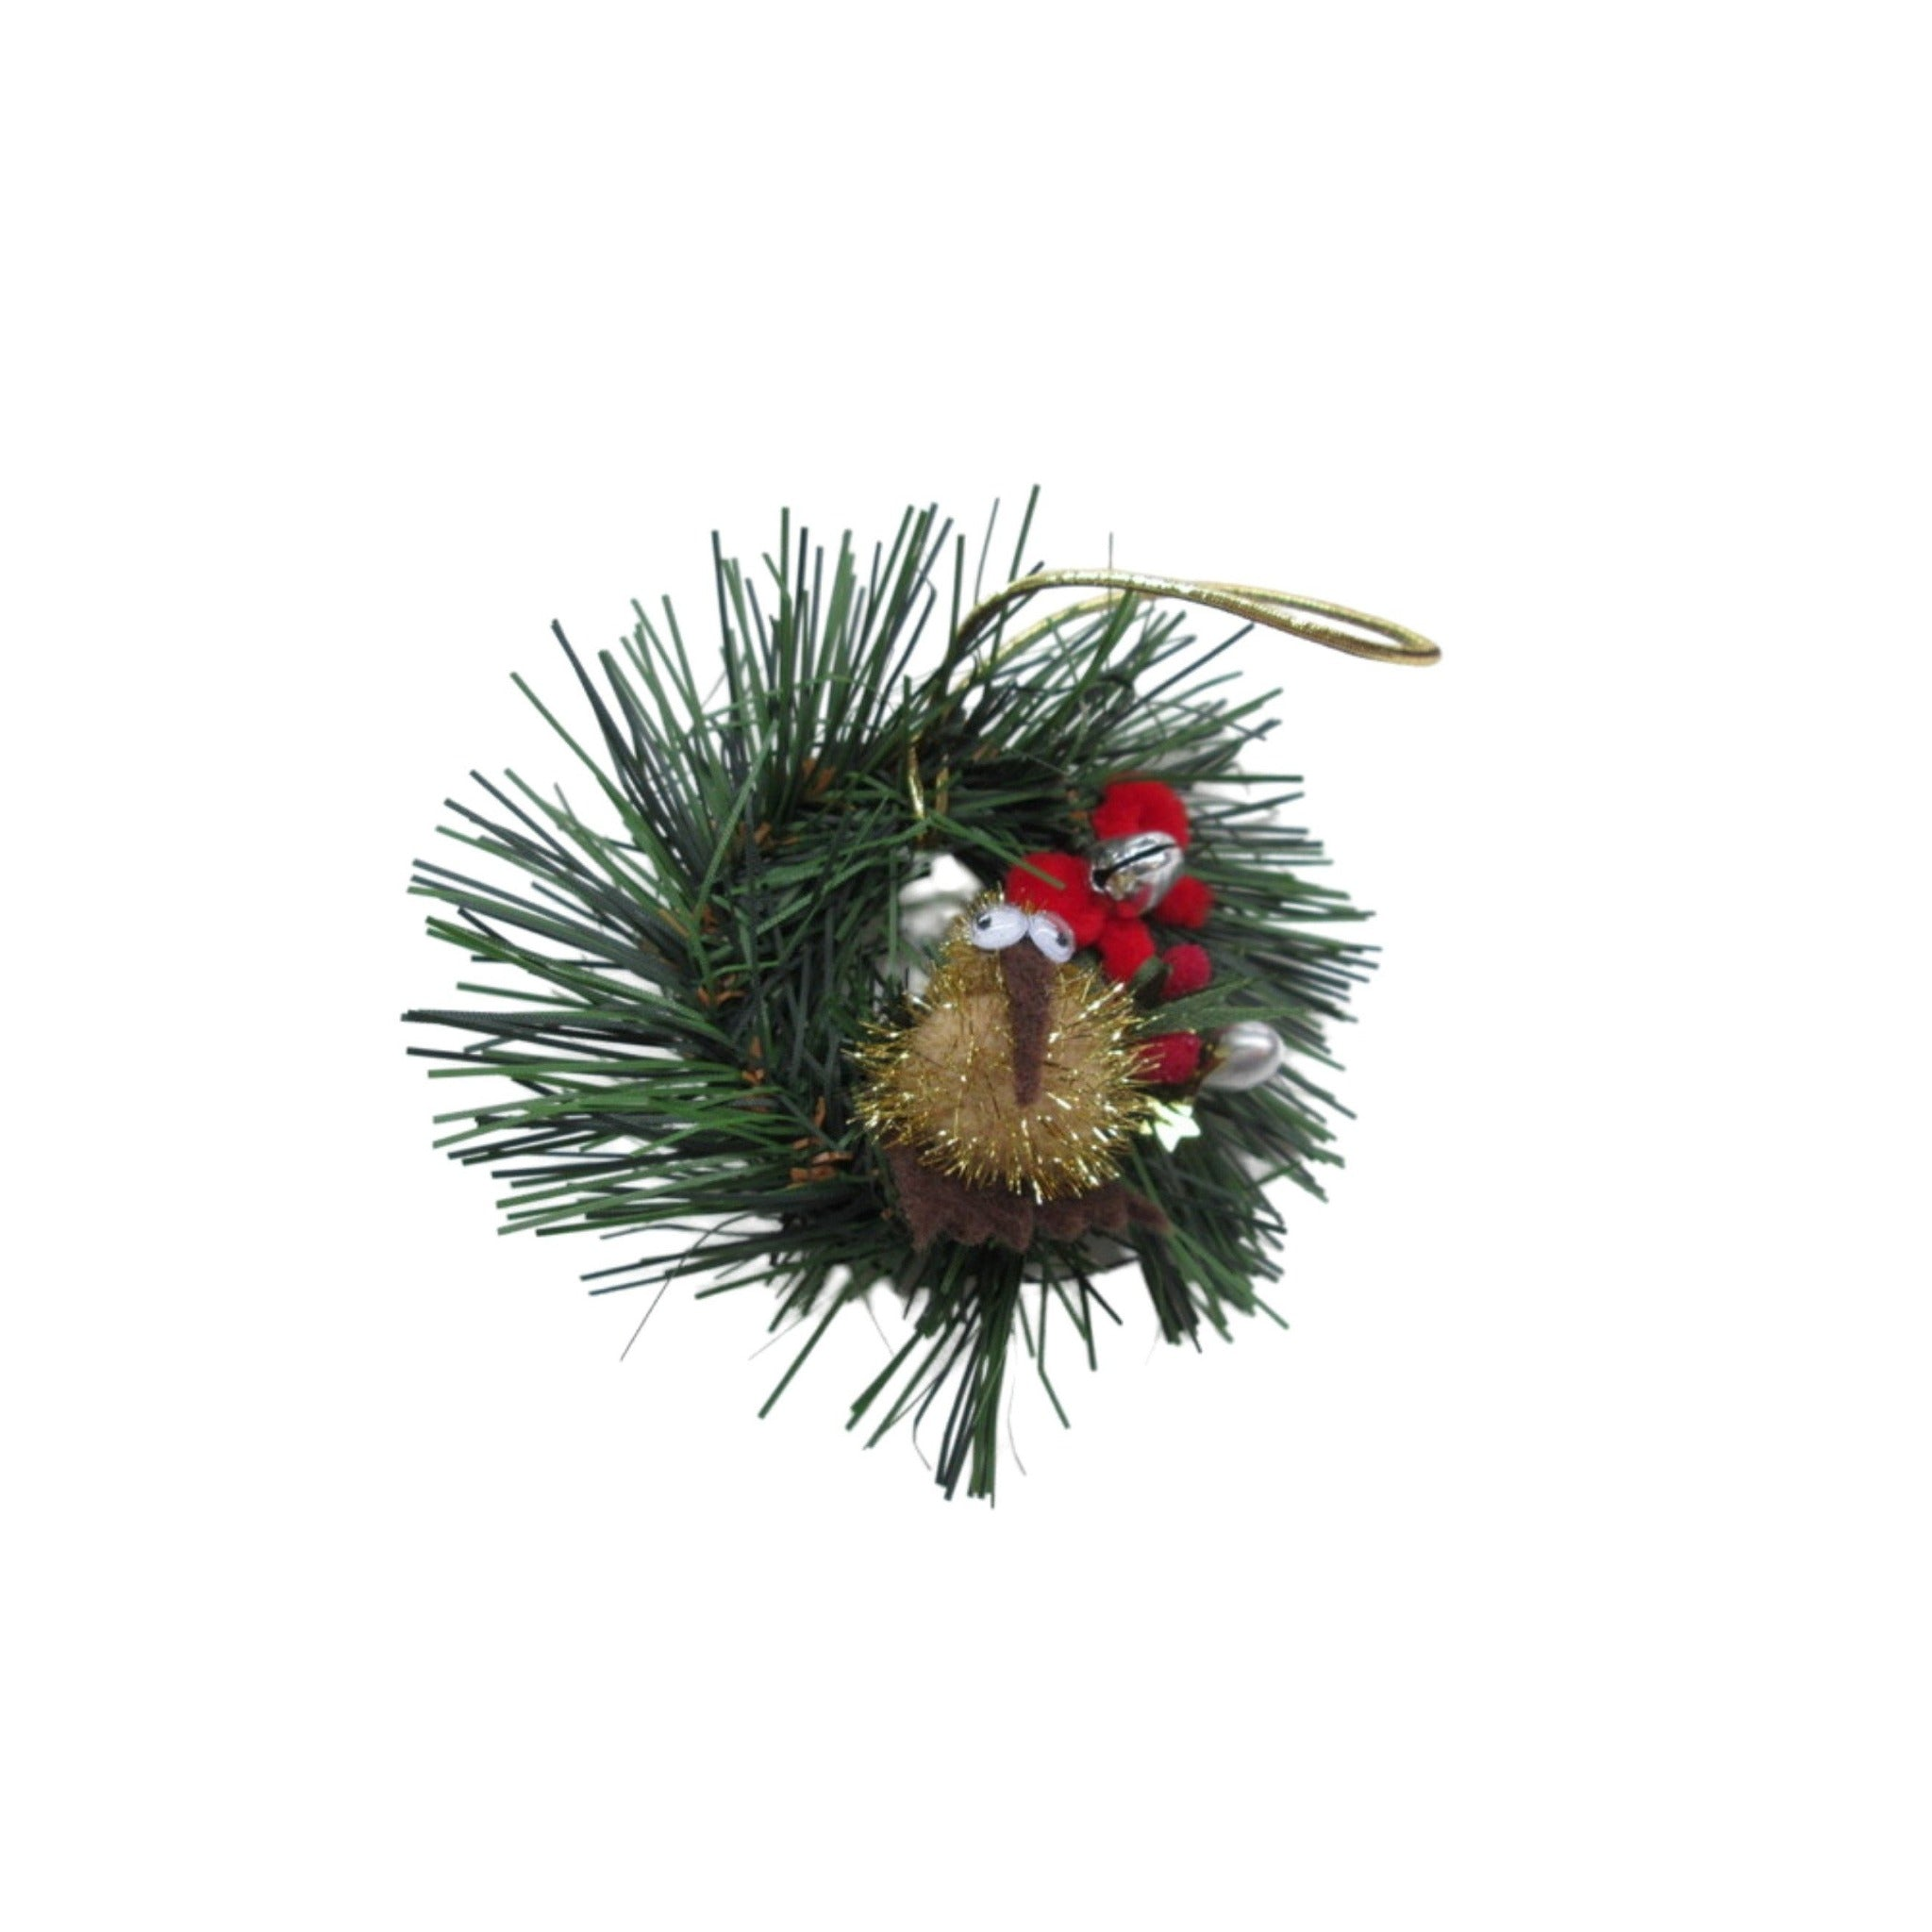 christmas kiwi decoration on wreath made in new zealand